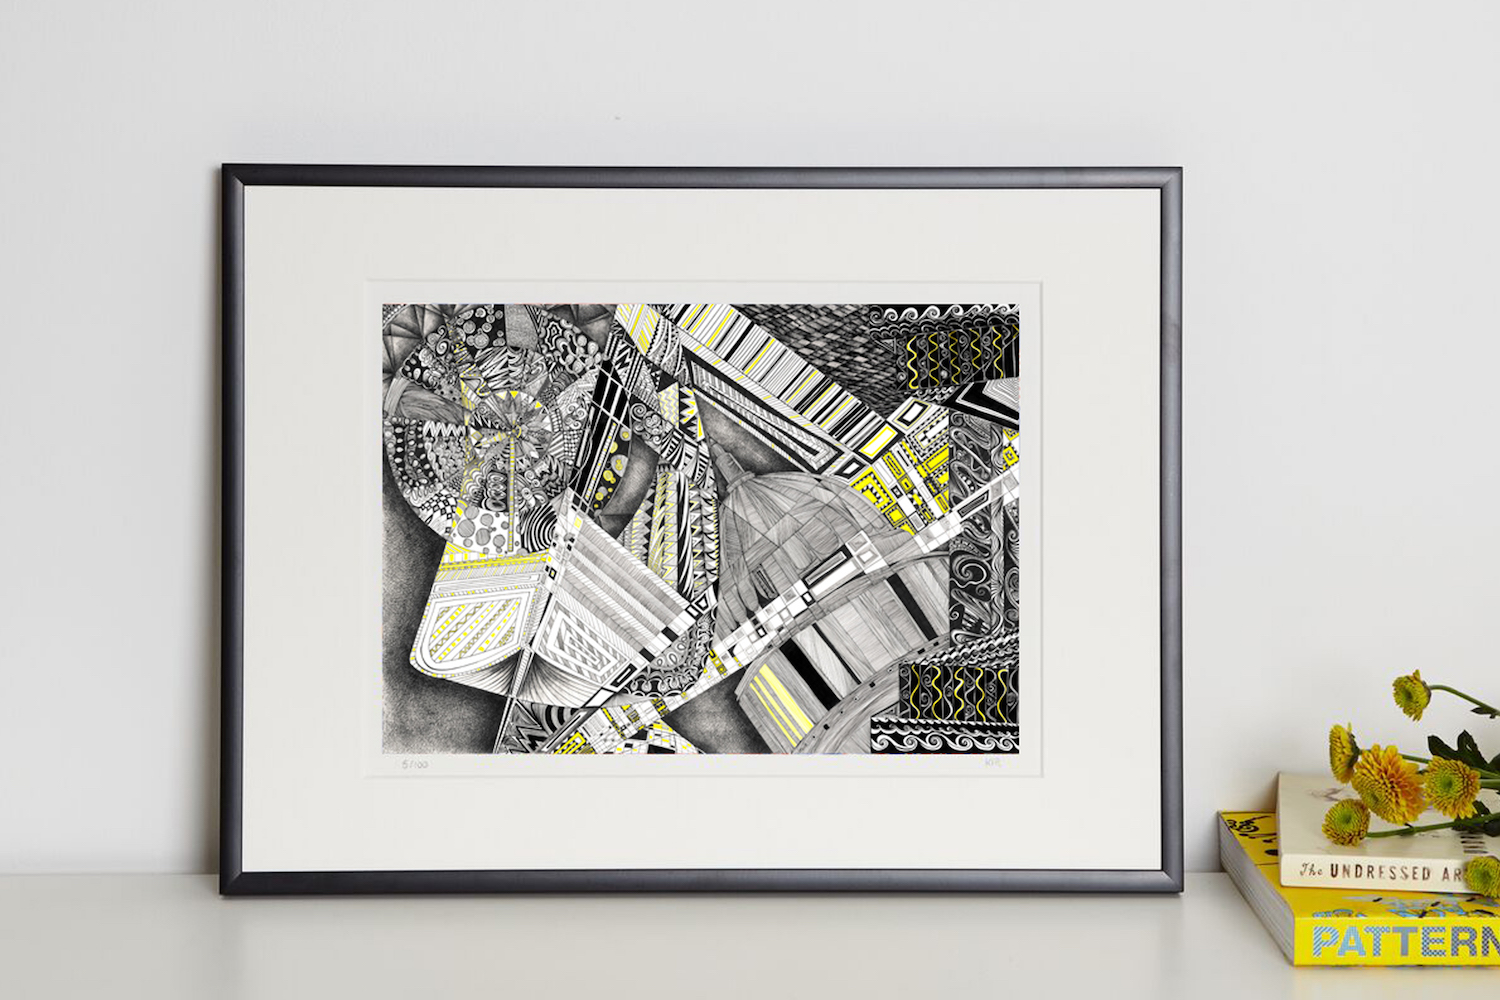 yellow brick road V print in frame